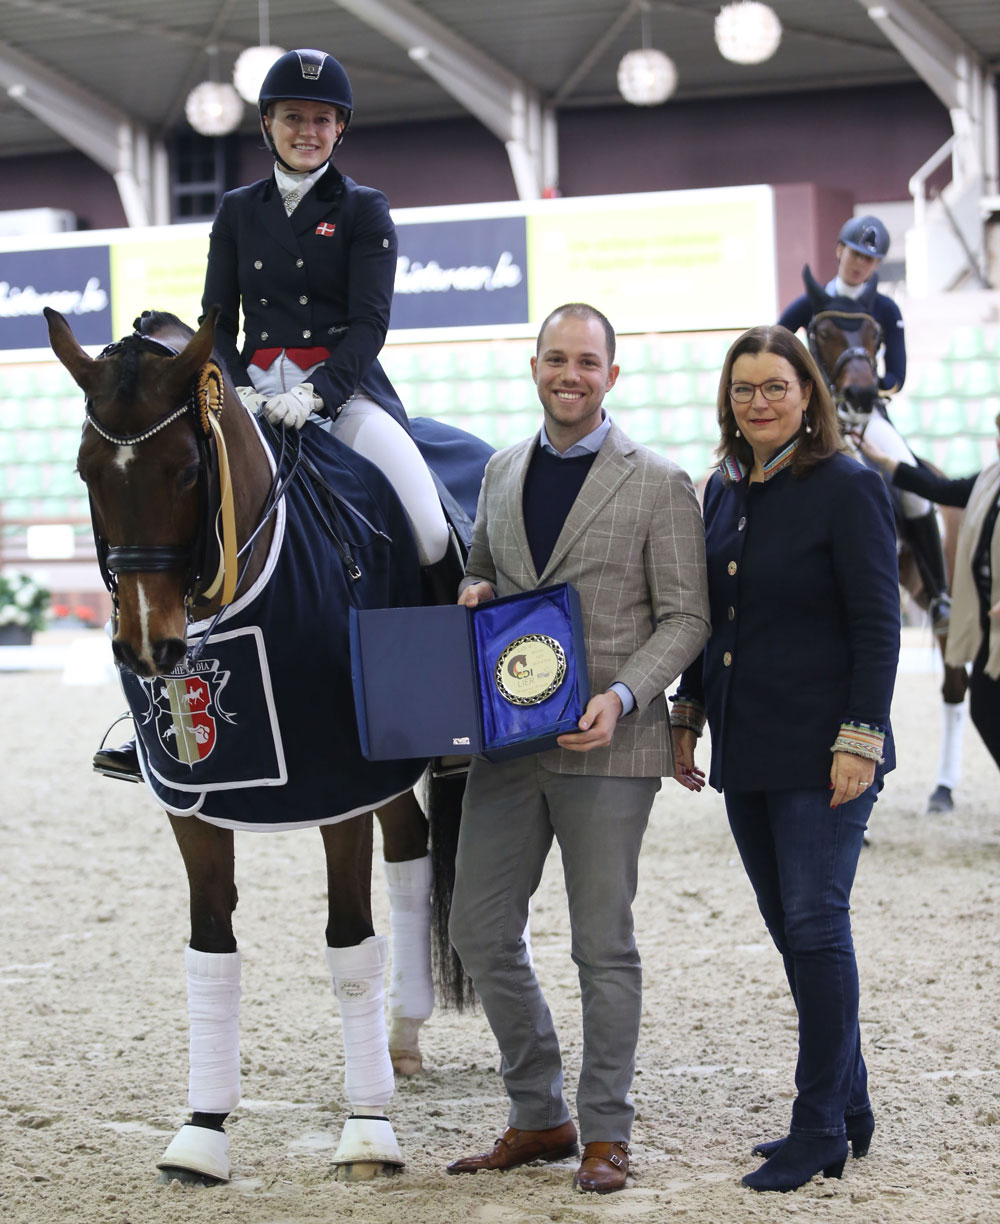 Equine MERC Prix: Nanna Skodborg Merrald and Saadon Que dance towards victory!